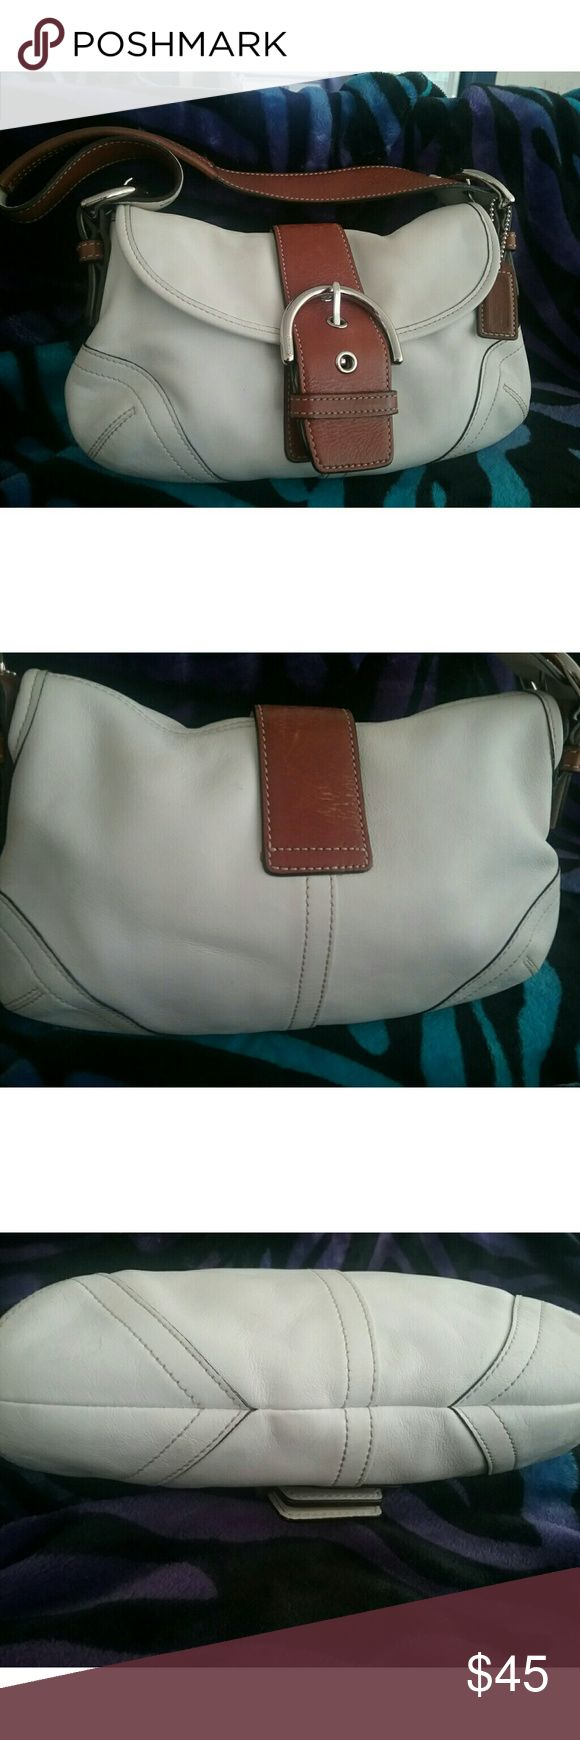 Coach  small tote,  white & brown, used This is a Coach purse, white and brown. Length is 6 inches ( without the strap) and width is 10 inches. Has some scratches. The most noticeable is on the back of the purse on the brown. Inside is clean. Coach Bags Totes